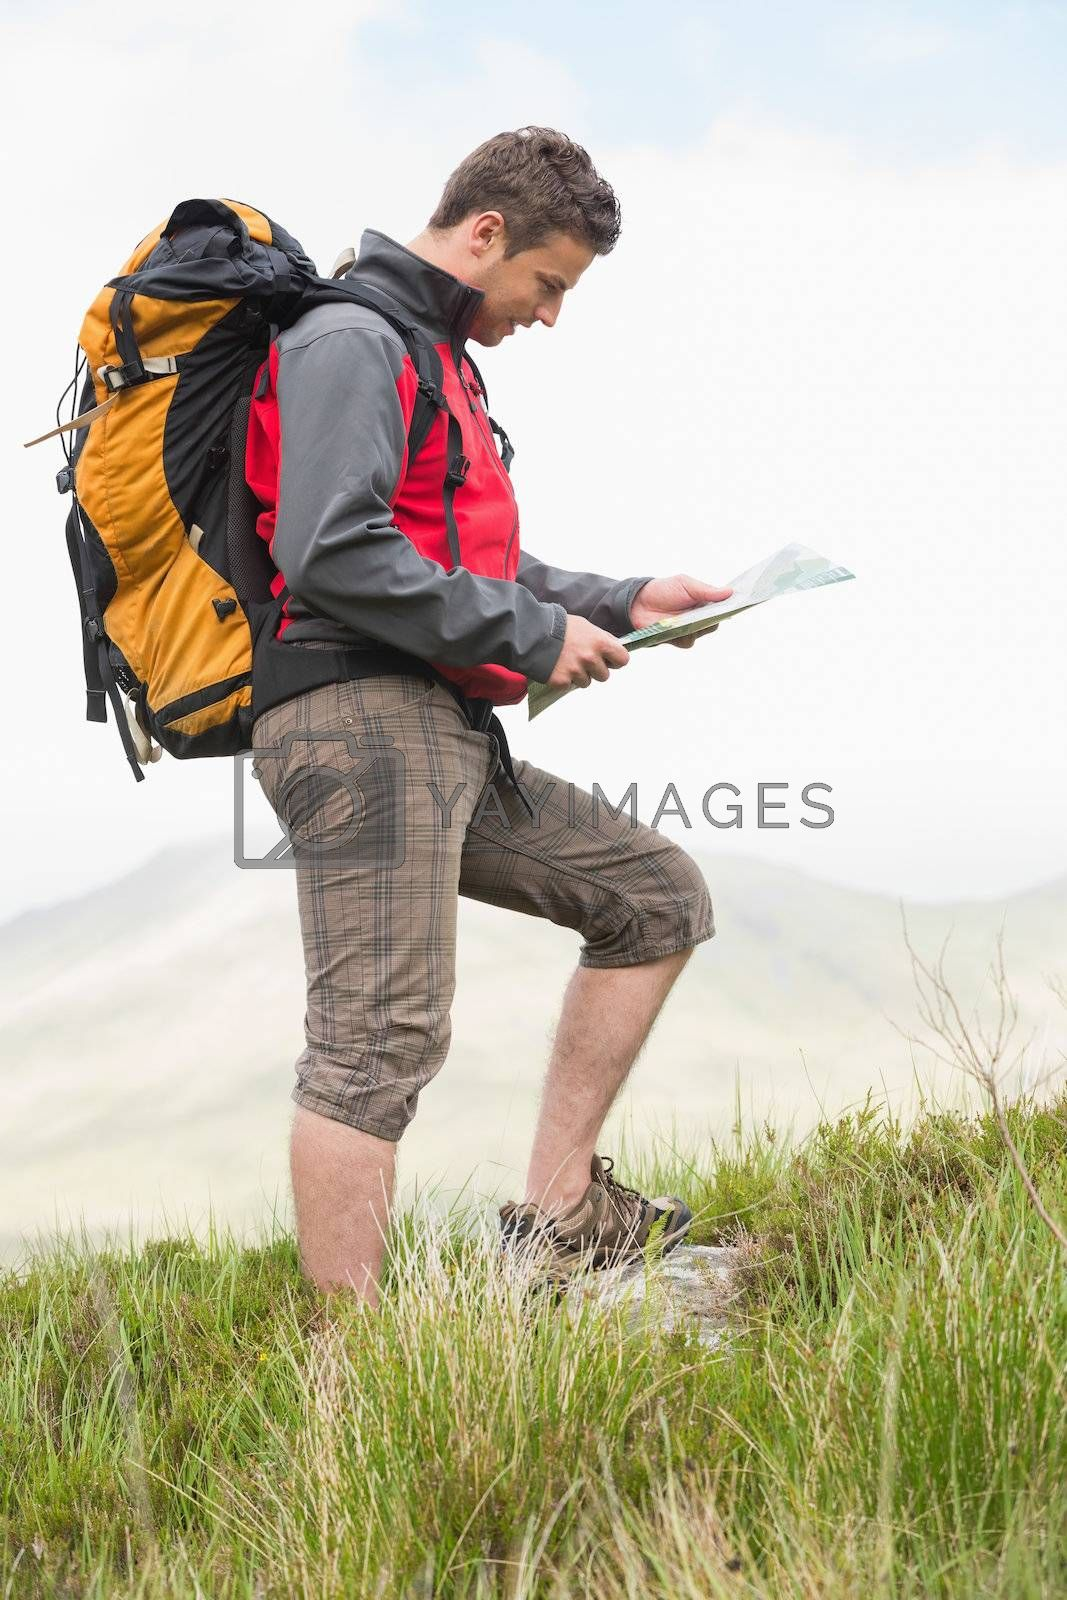 Handsome hiker with backpack walking uphill reading a map by Wavebreakmedia